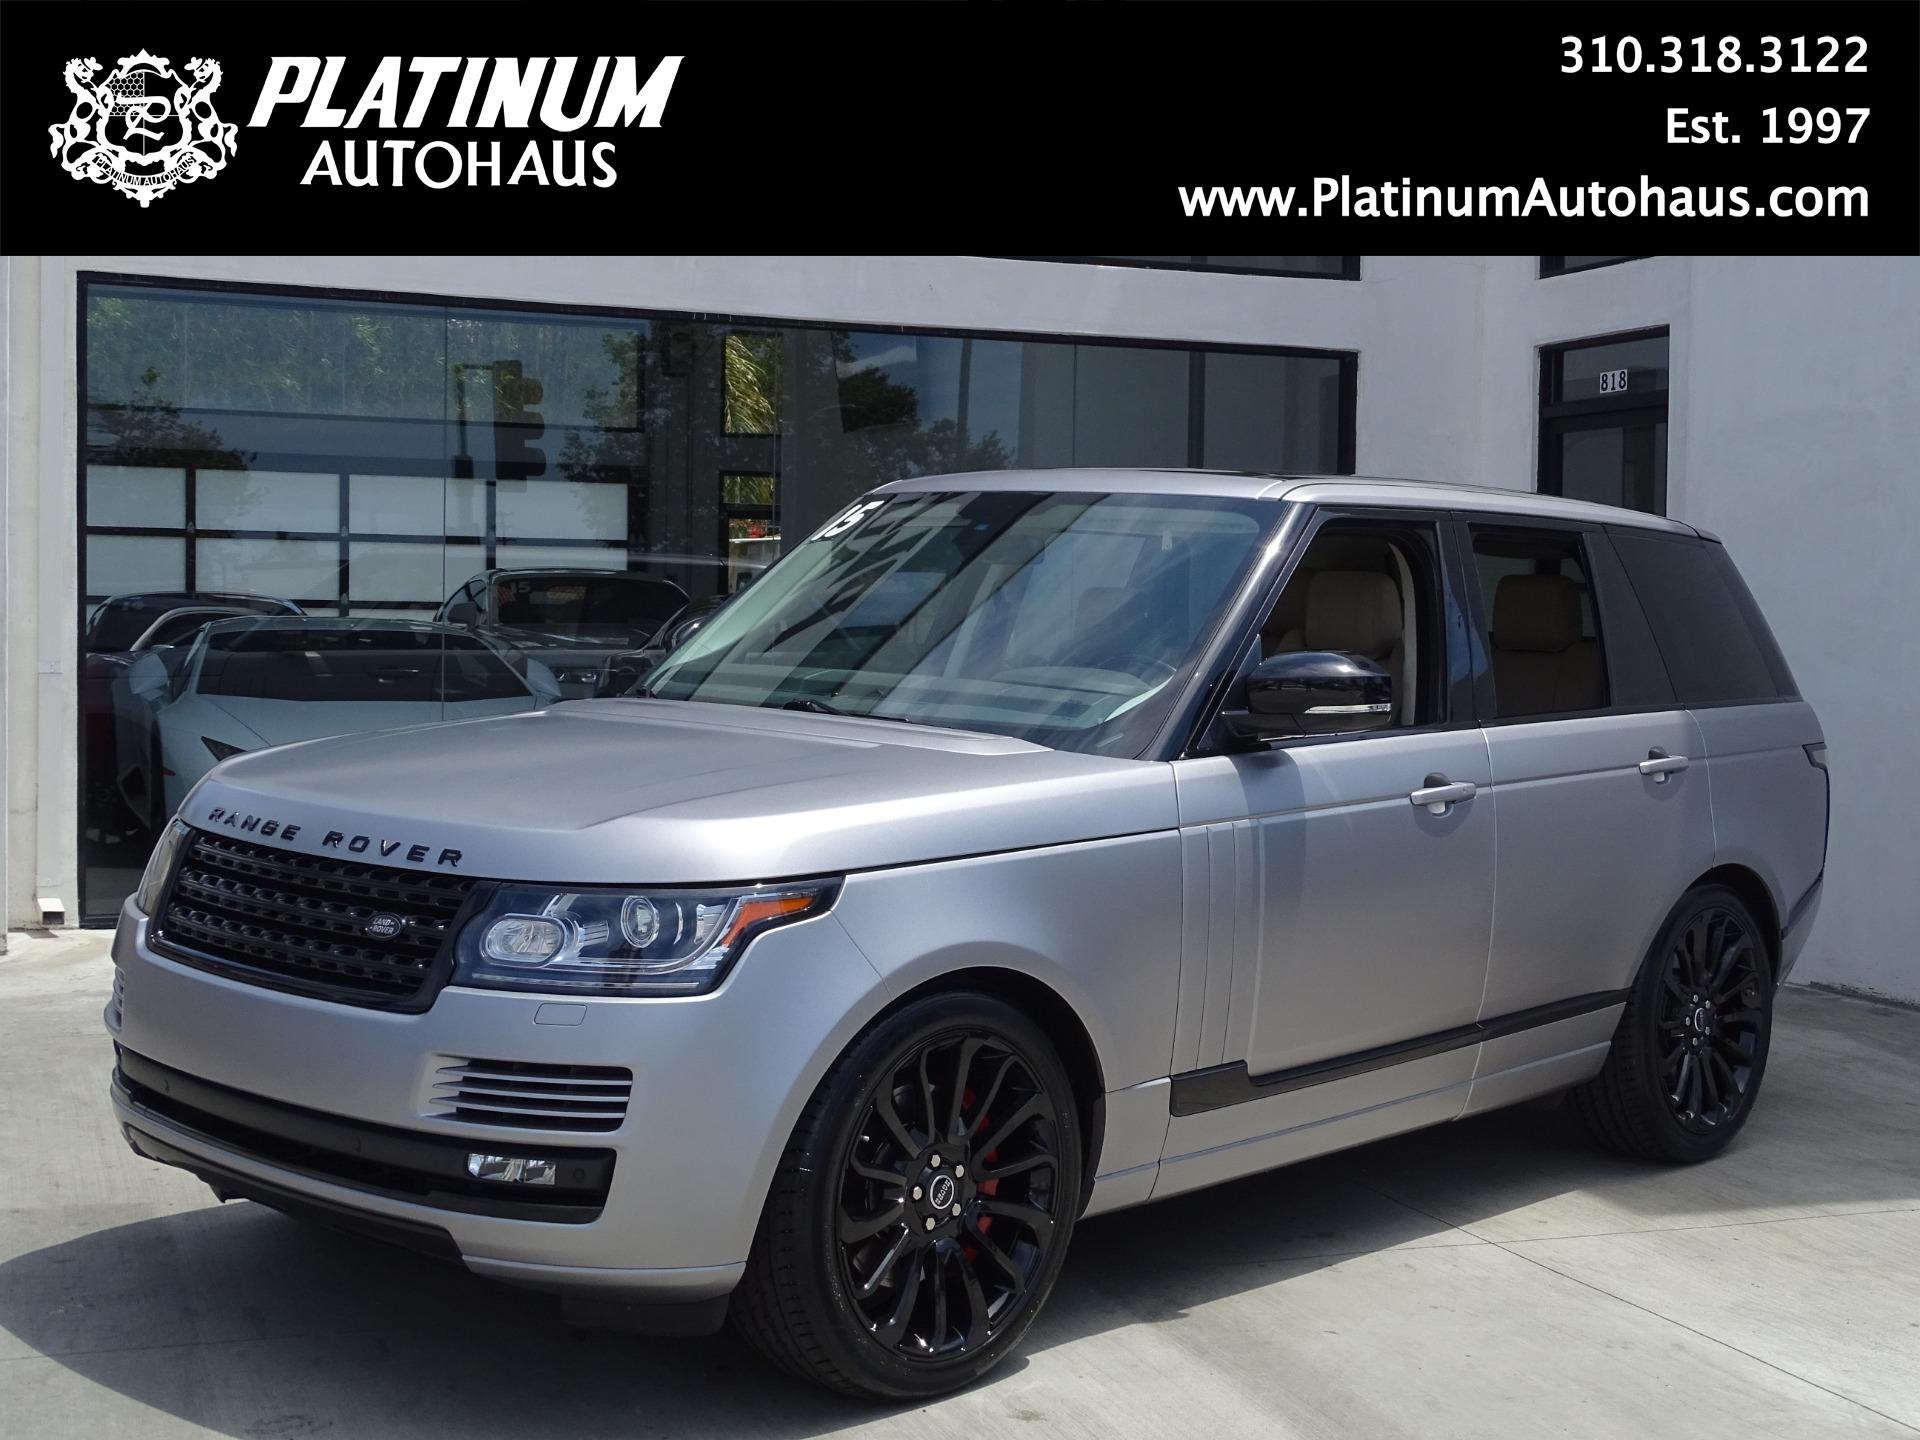 Matte Range Rover >> 2015 Land Rover Range Rover Supercharged Stock 6574 For